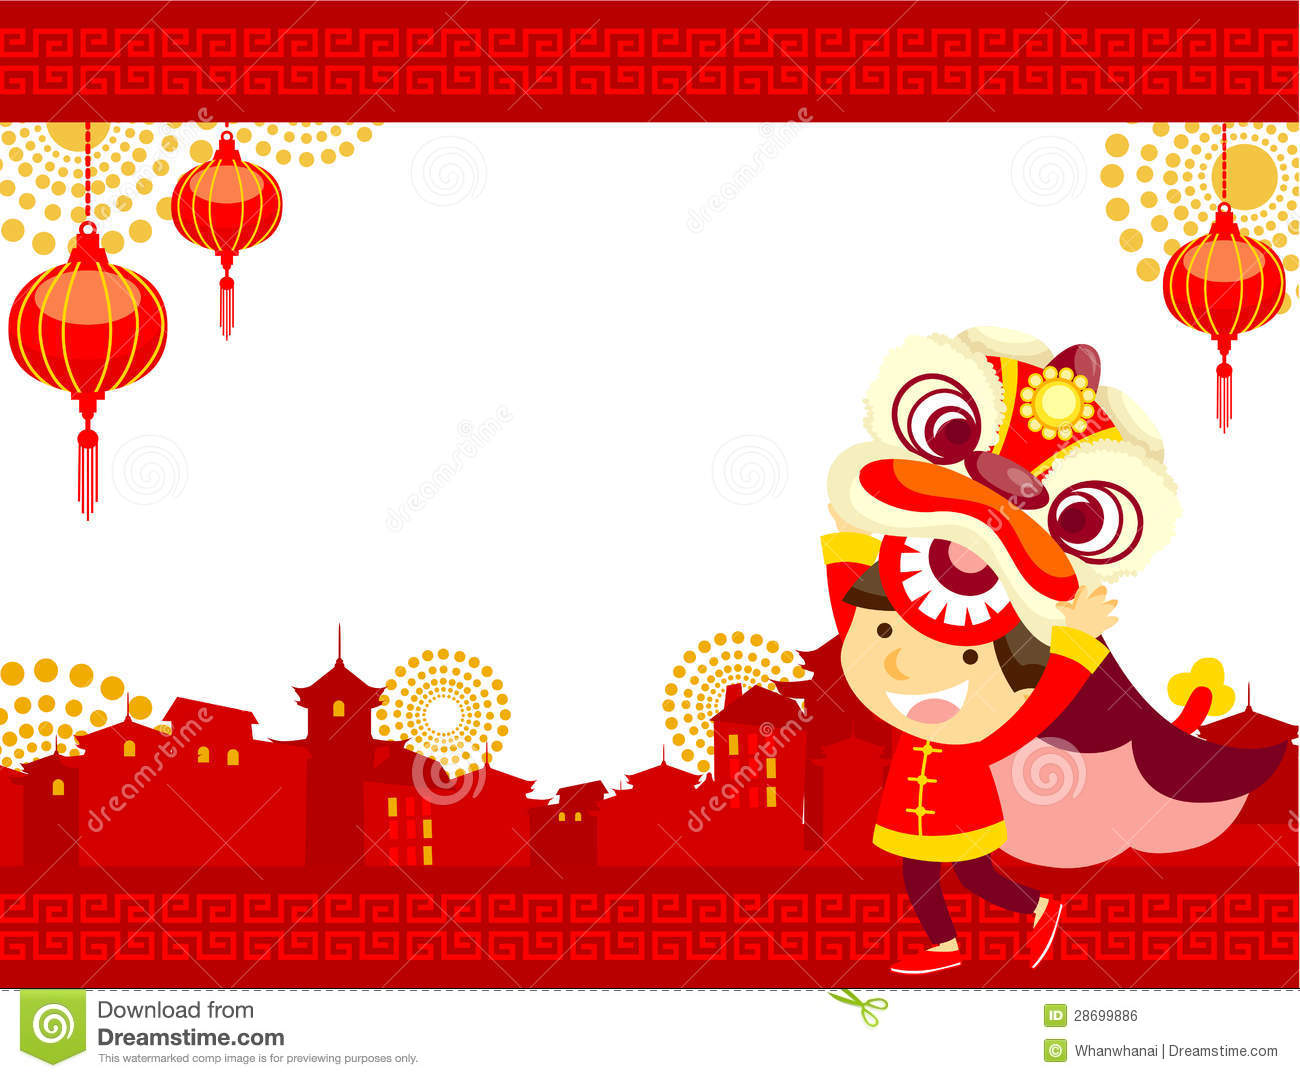 illustration and background for chinese new year theme